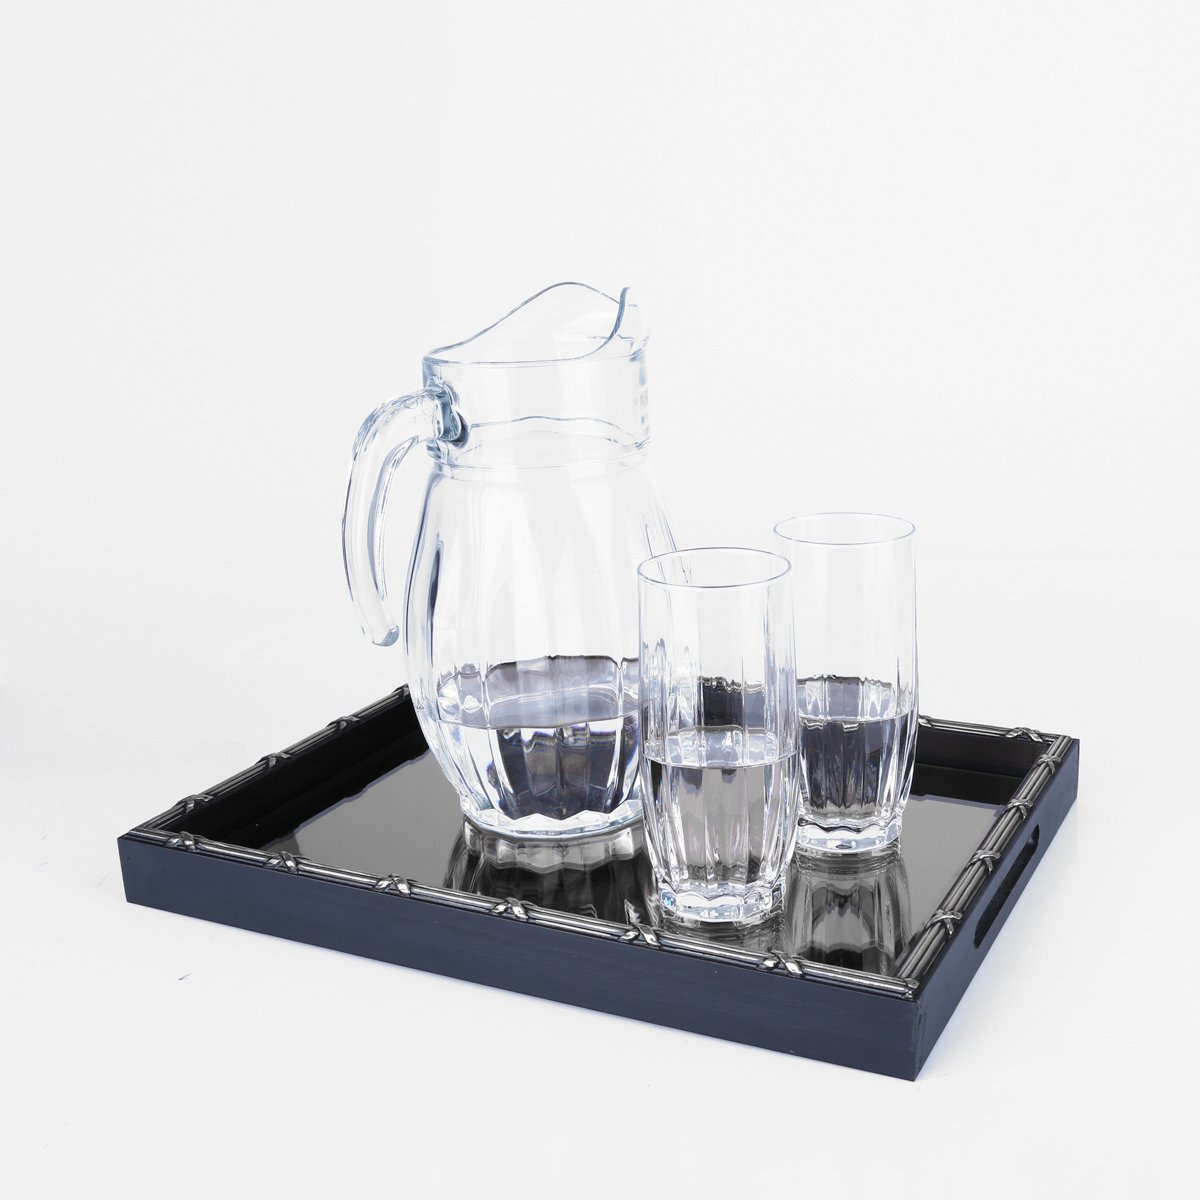 Woodart Croisé Wooden Serving Tray with Handles (Black, 15x11) by Wood Art (Image #3)